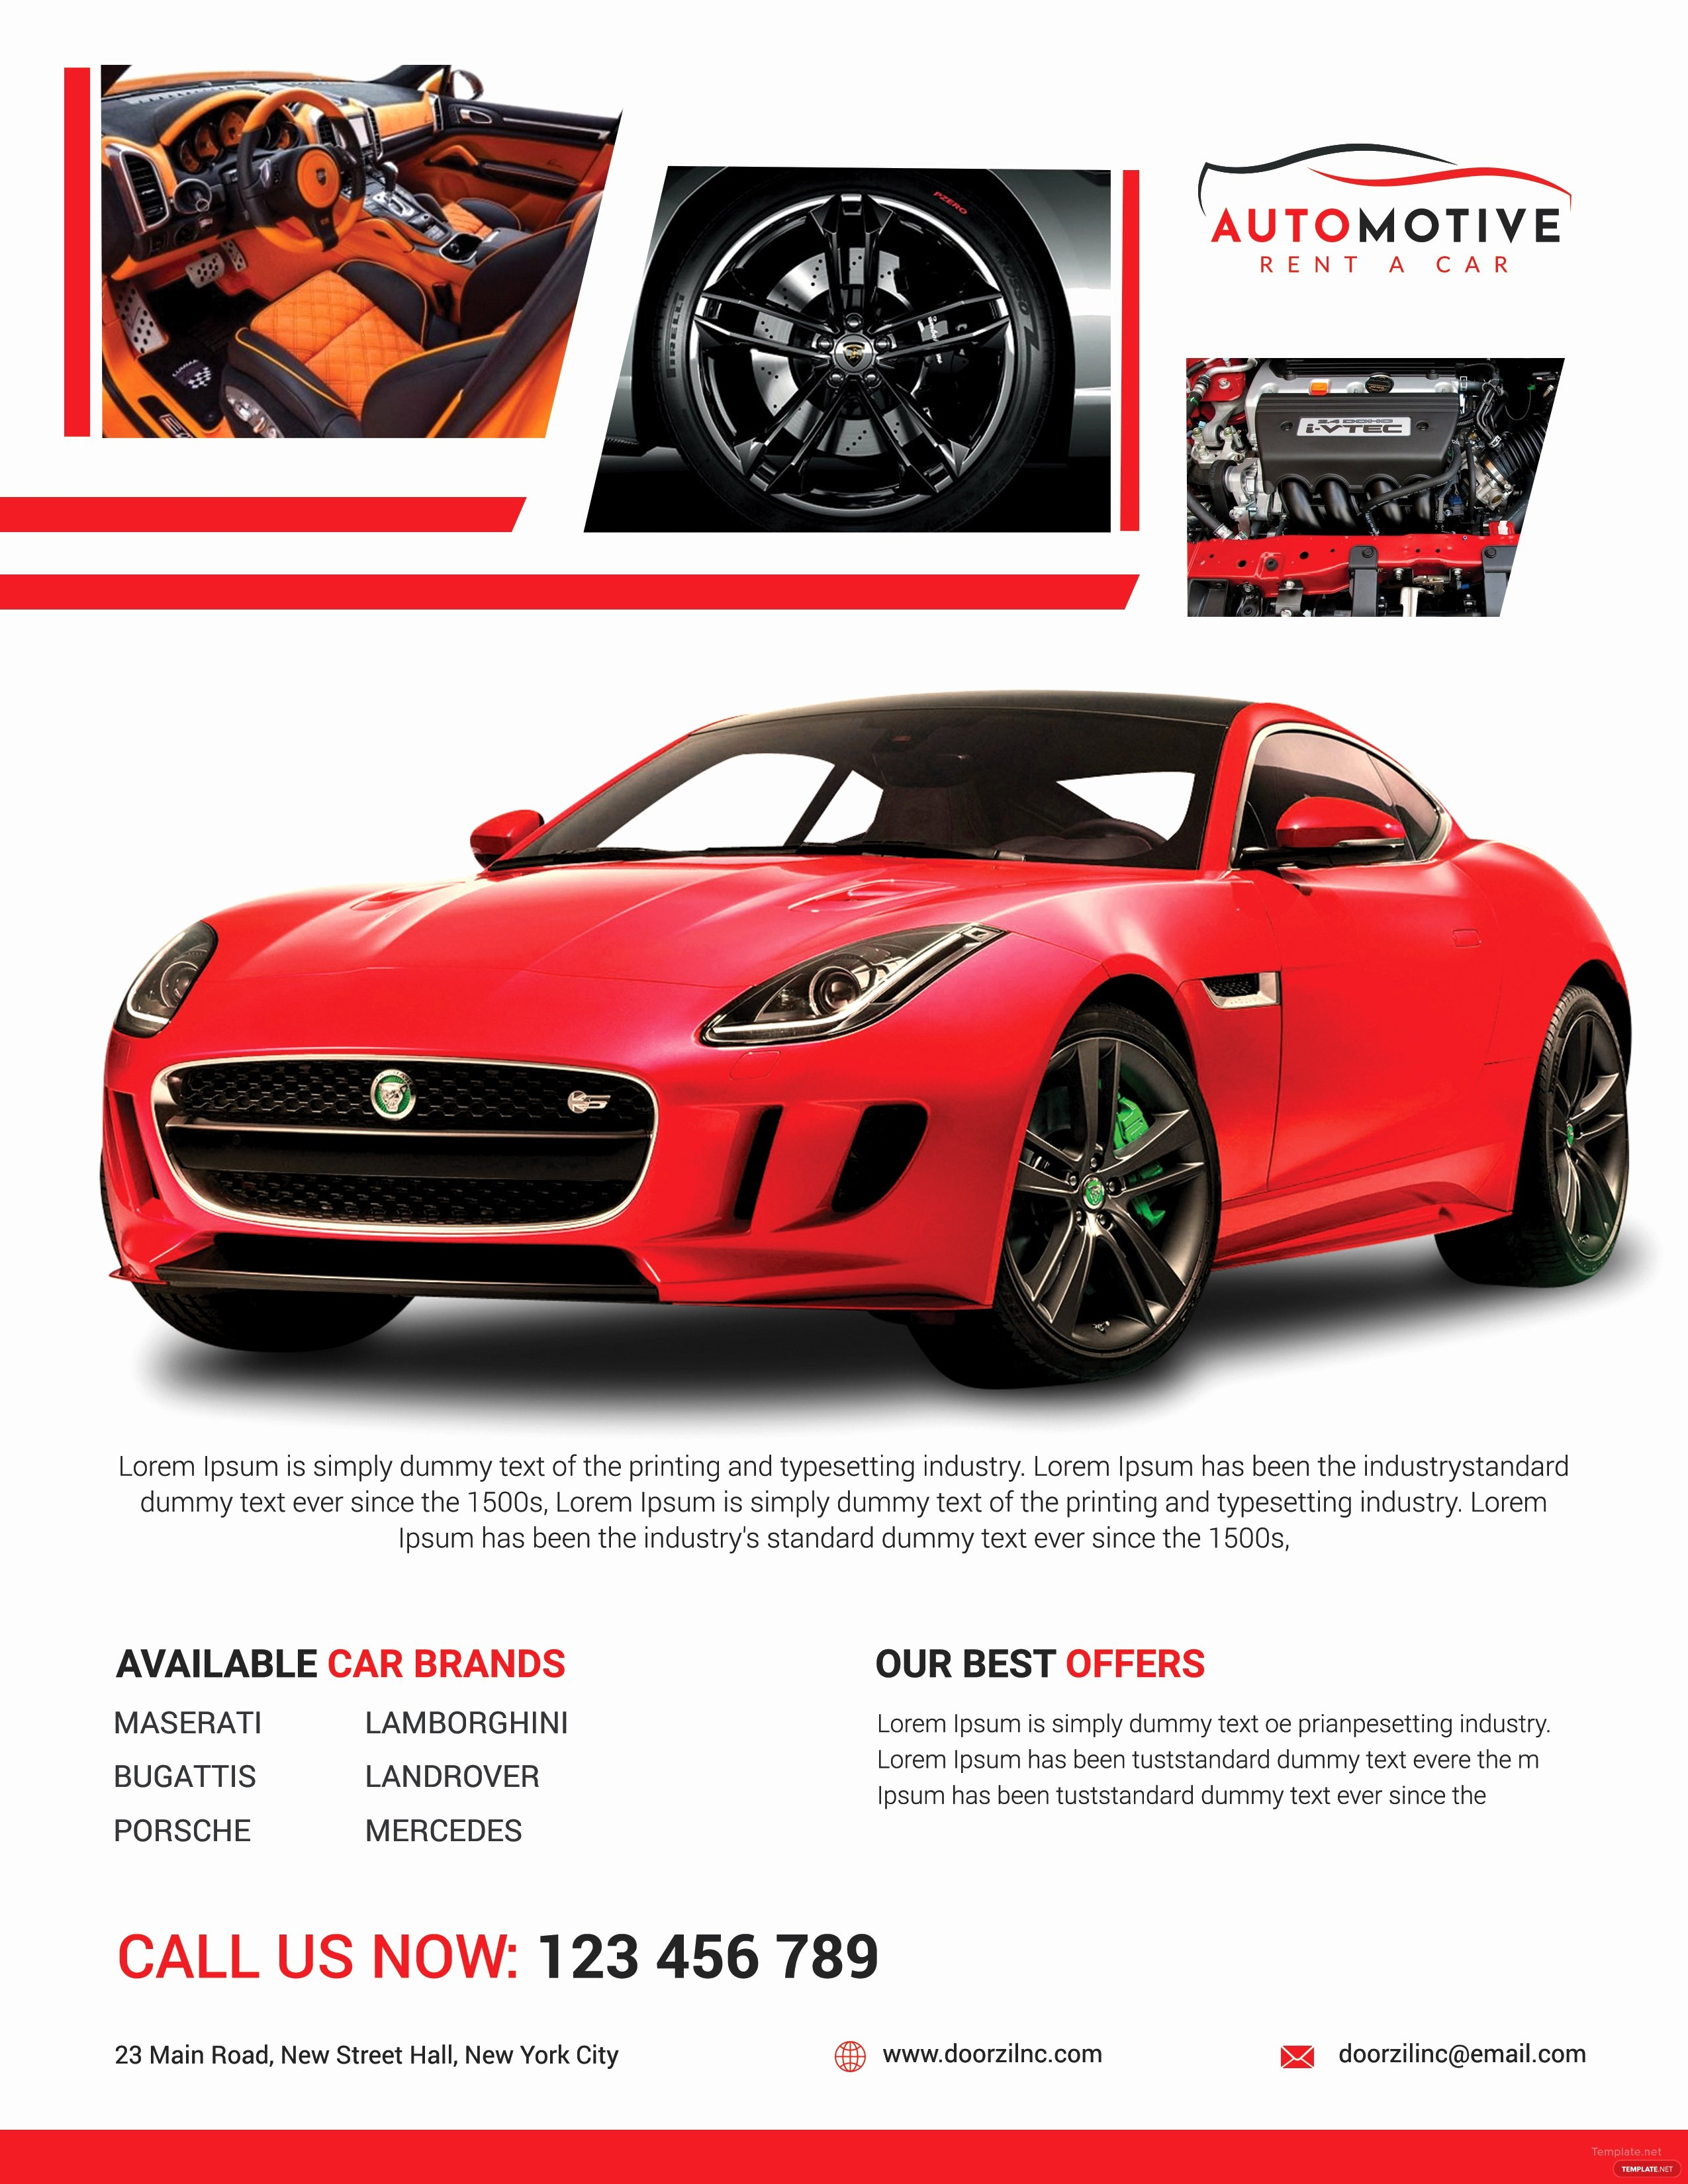 Car for Sale Flyer Template Awesome Car Sales Flyer Template In Adobe Shop Illustrator